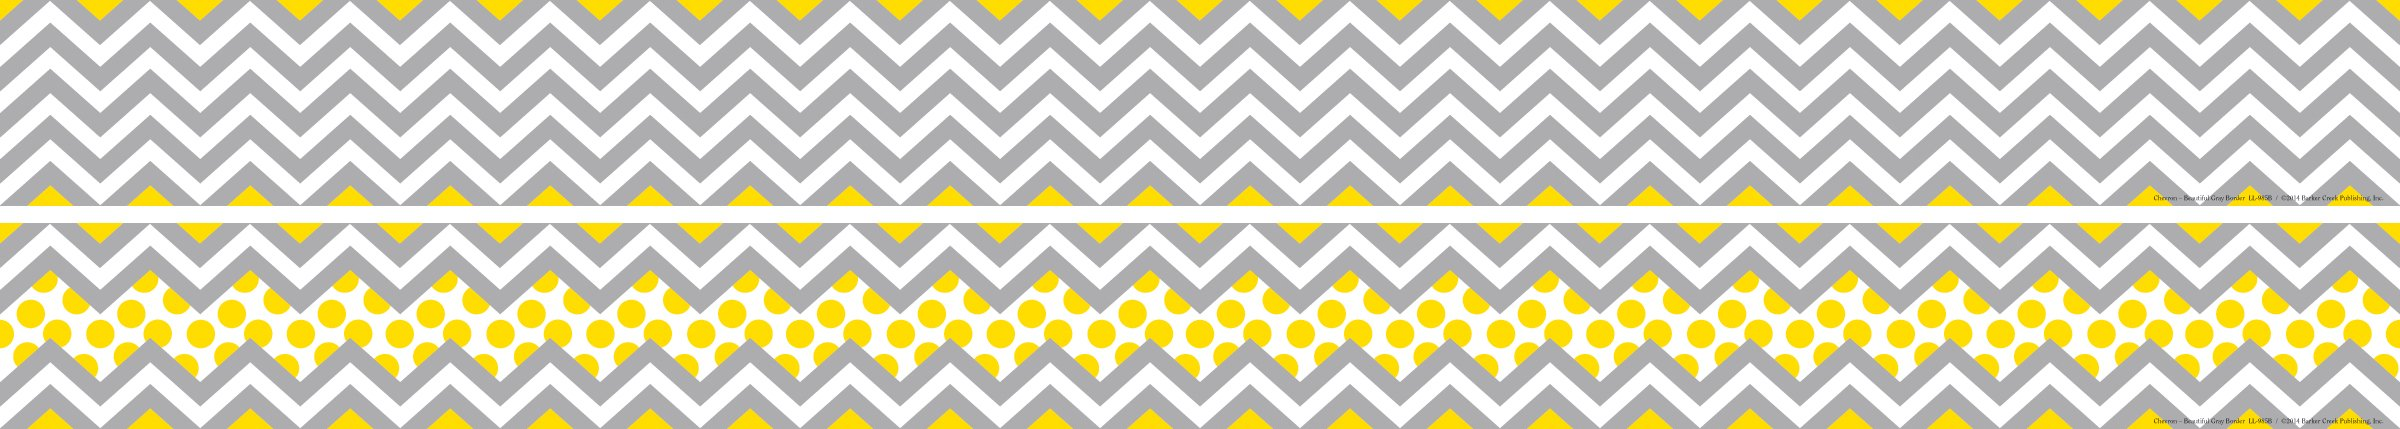 Barker Creek - Office Products Double-Sided Bulletin Board Border, Chevron Gray & Yellow, 35' (LL-985)